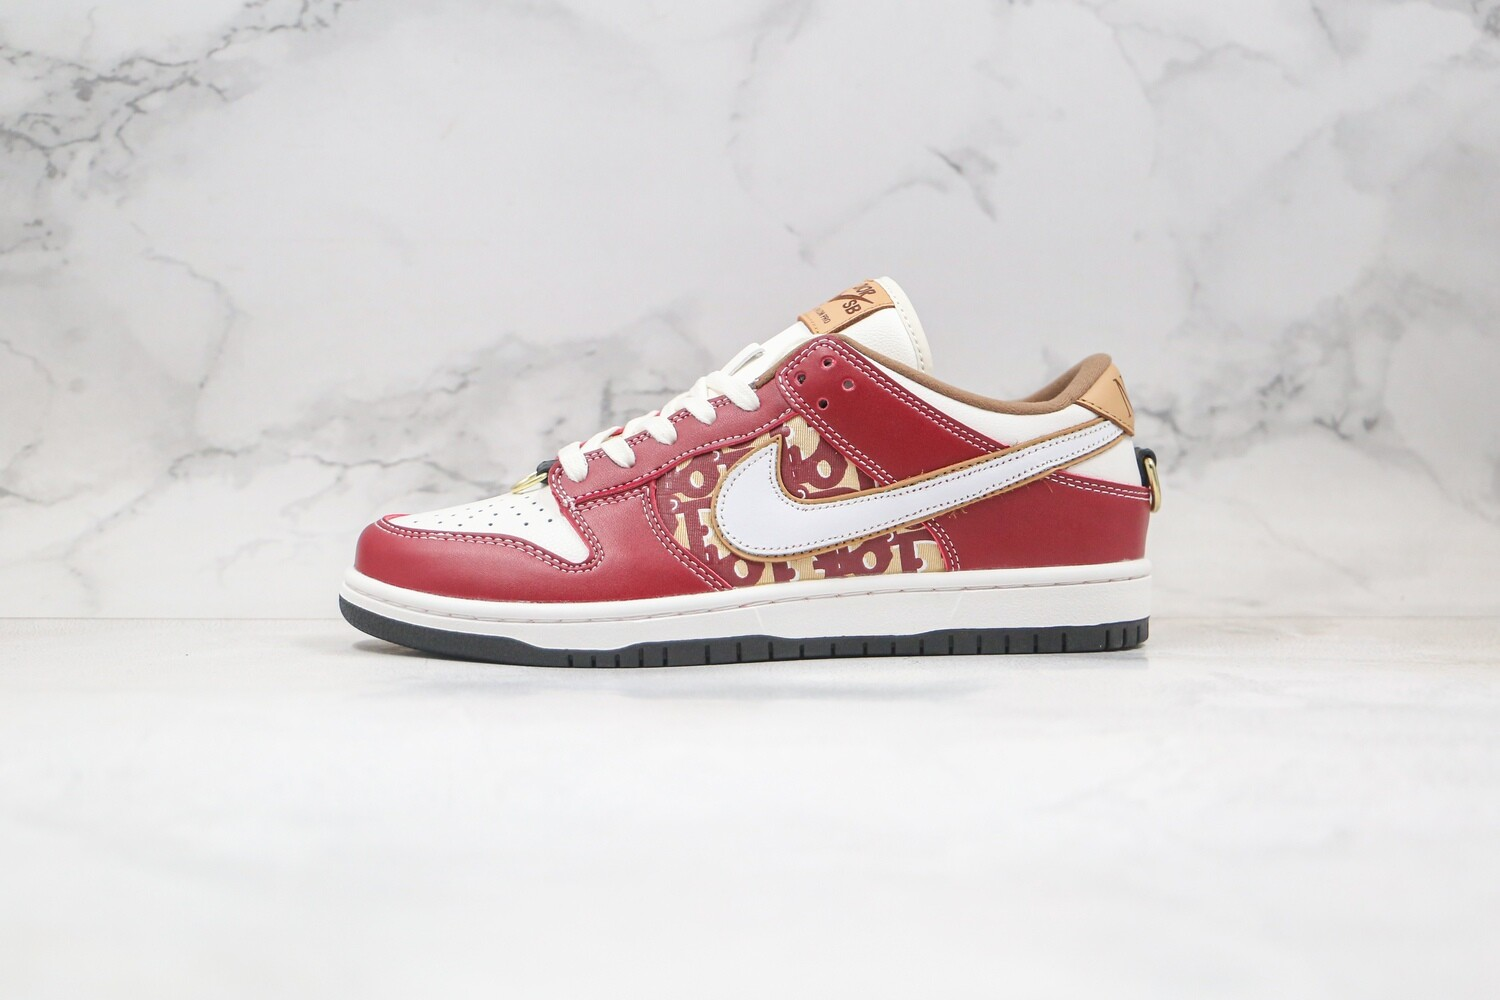 Custom Sneaker - Nike Dunk Red BeigeD Low